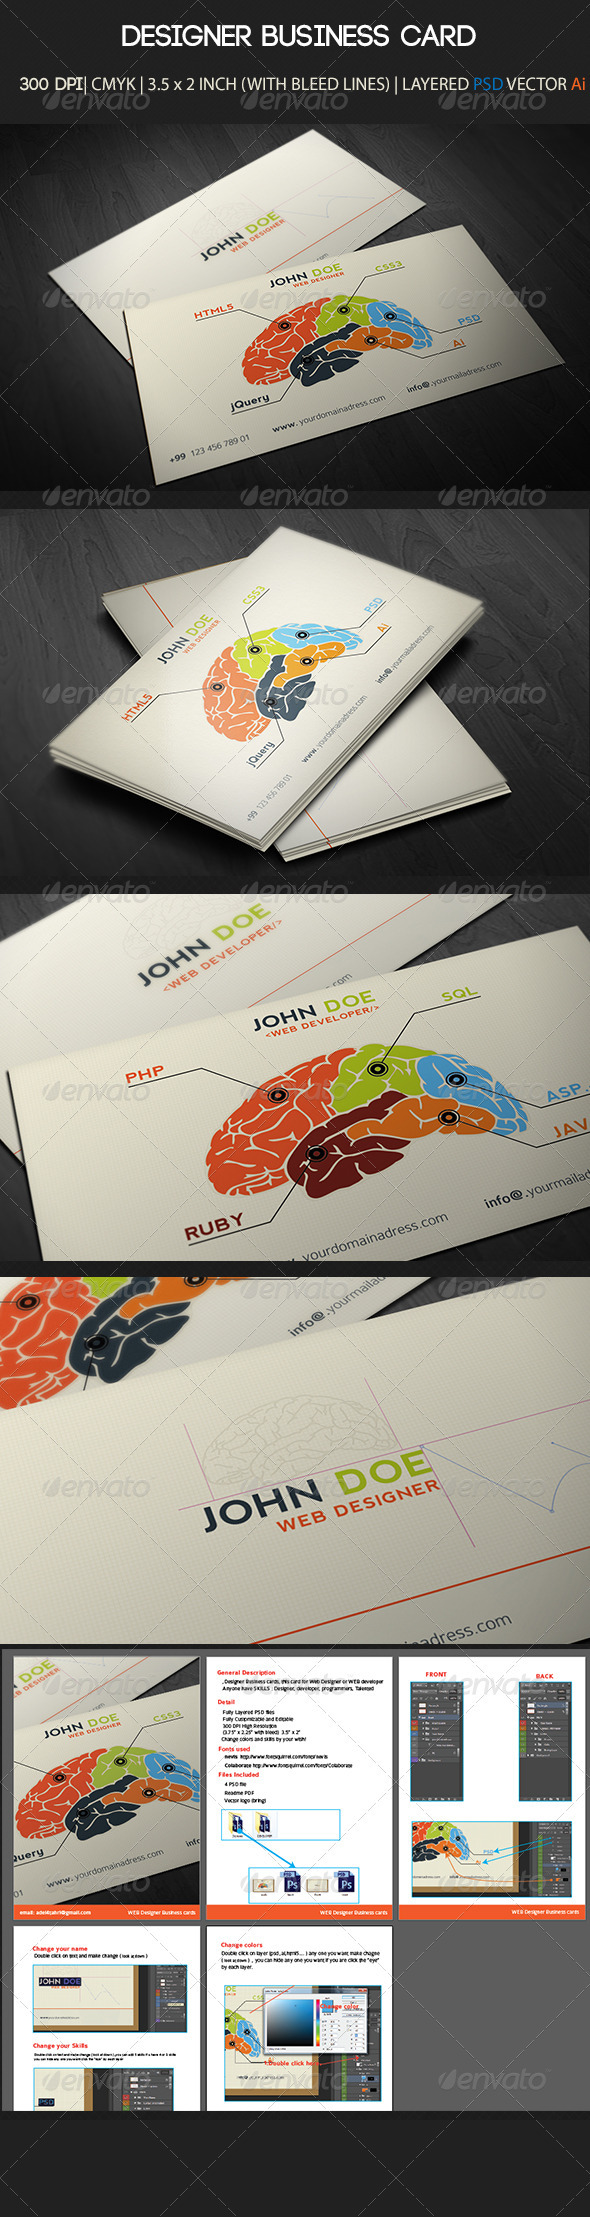 Designer Business Card  - Industry Specific Business Cards